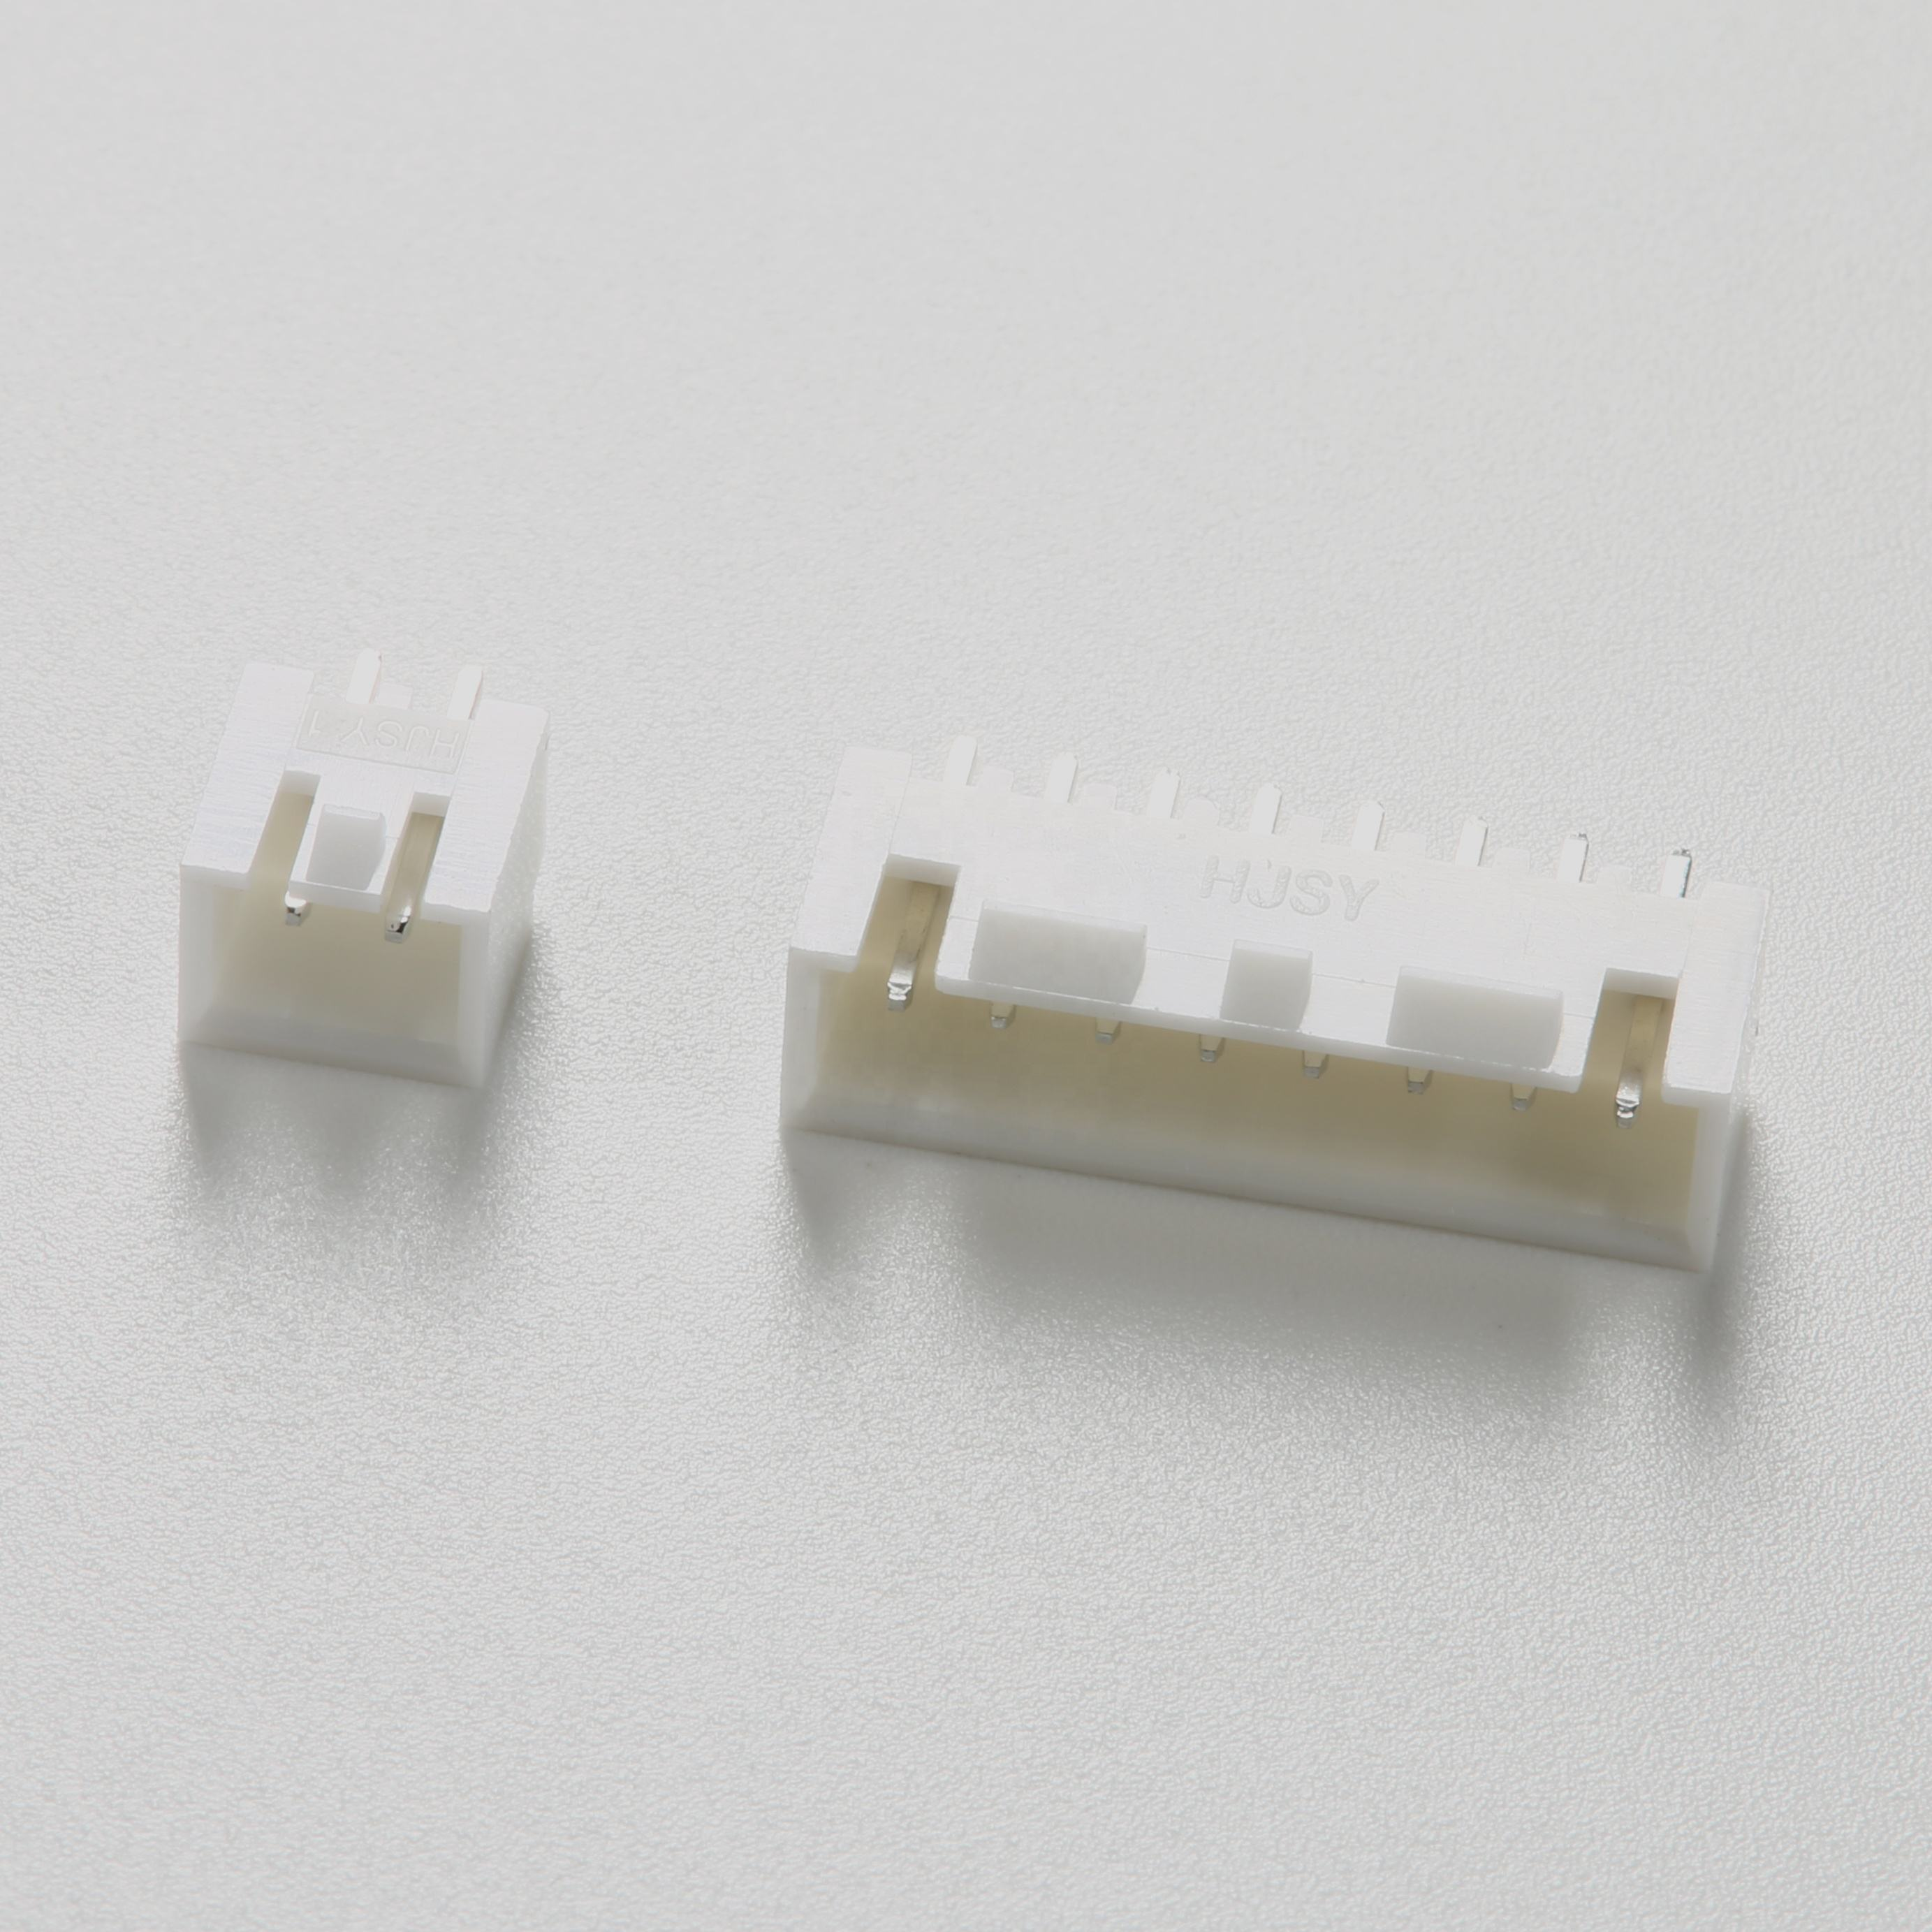 Model XH 2.5mm pitch straight headers with lock 2pin to 16pin wire to board electrical connector